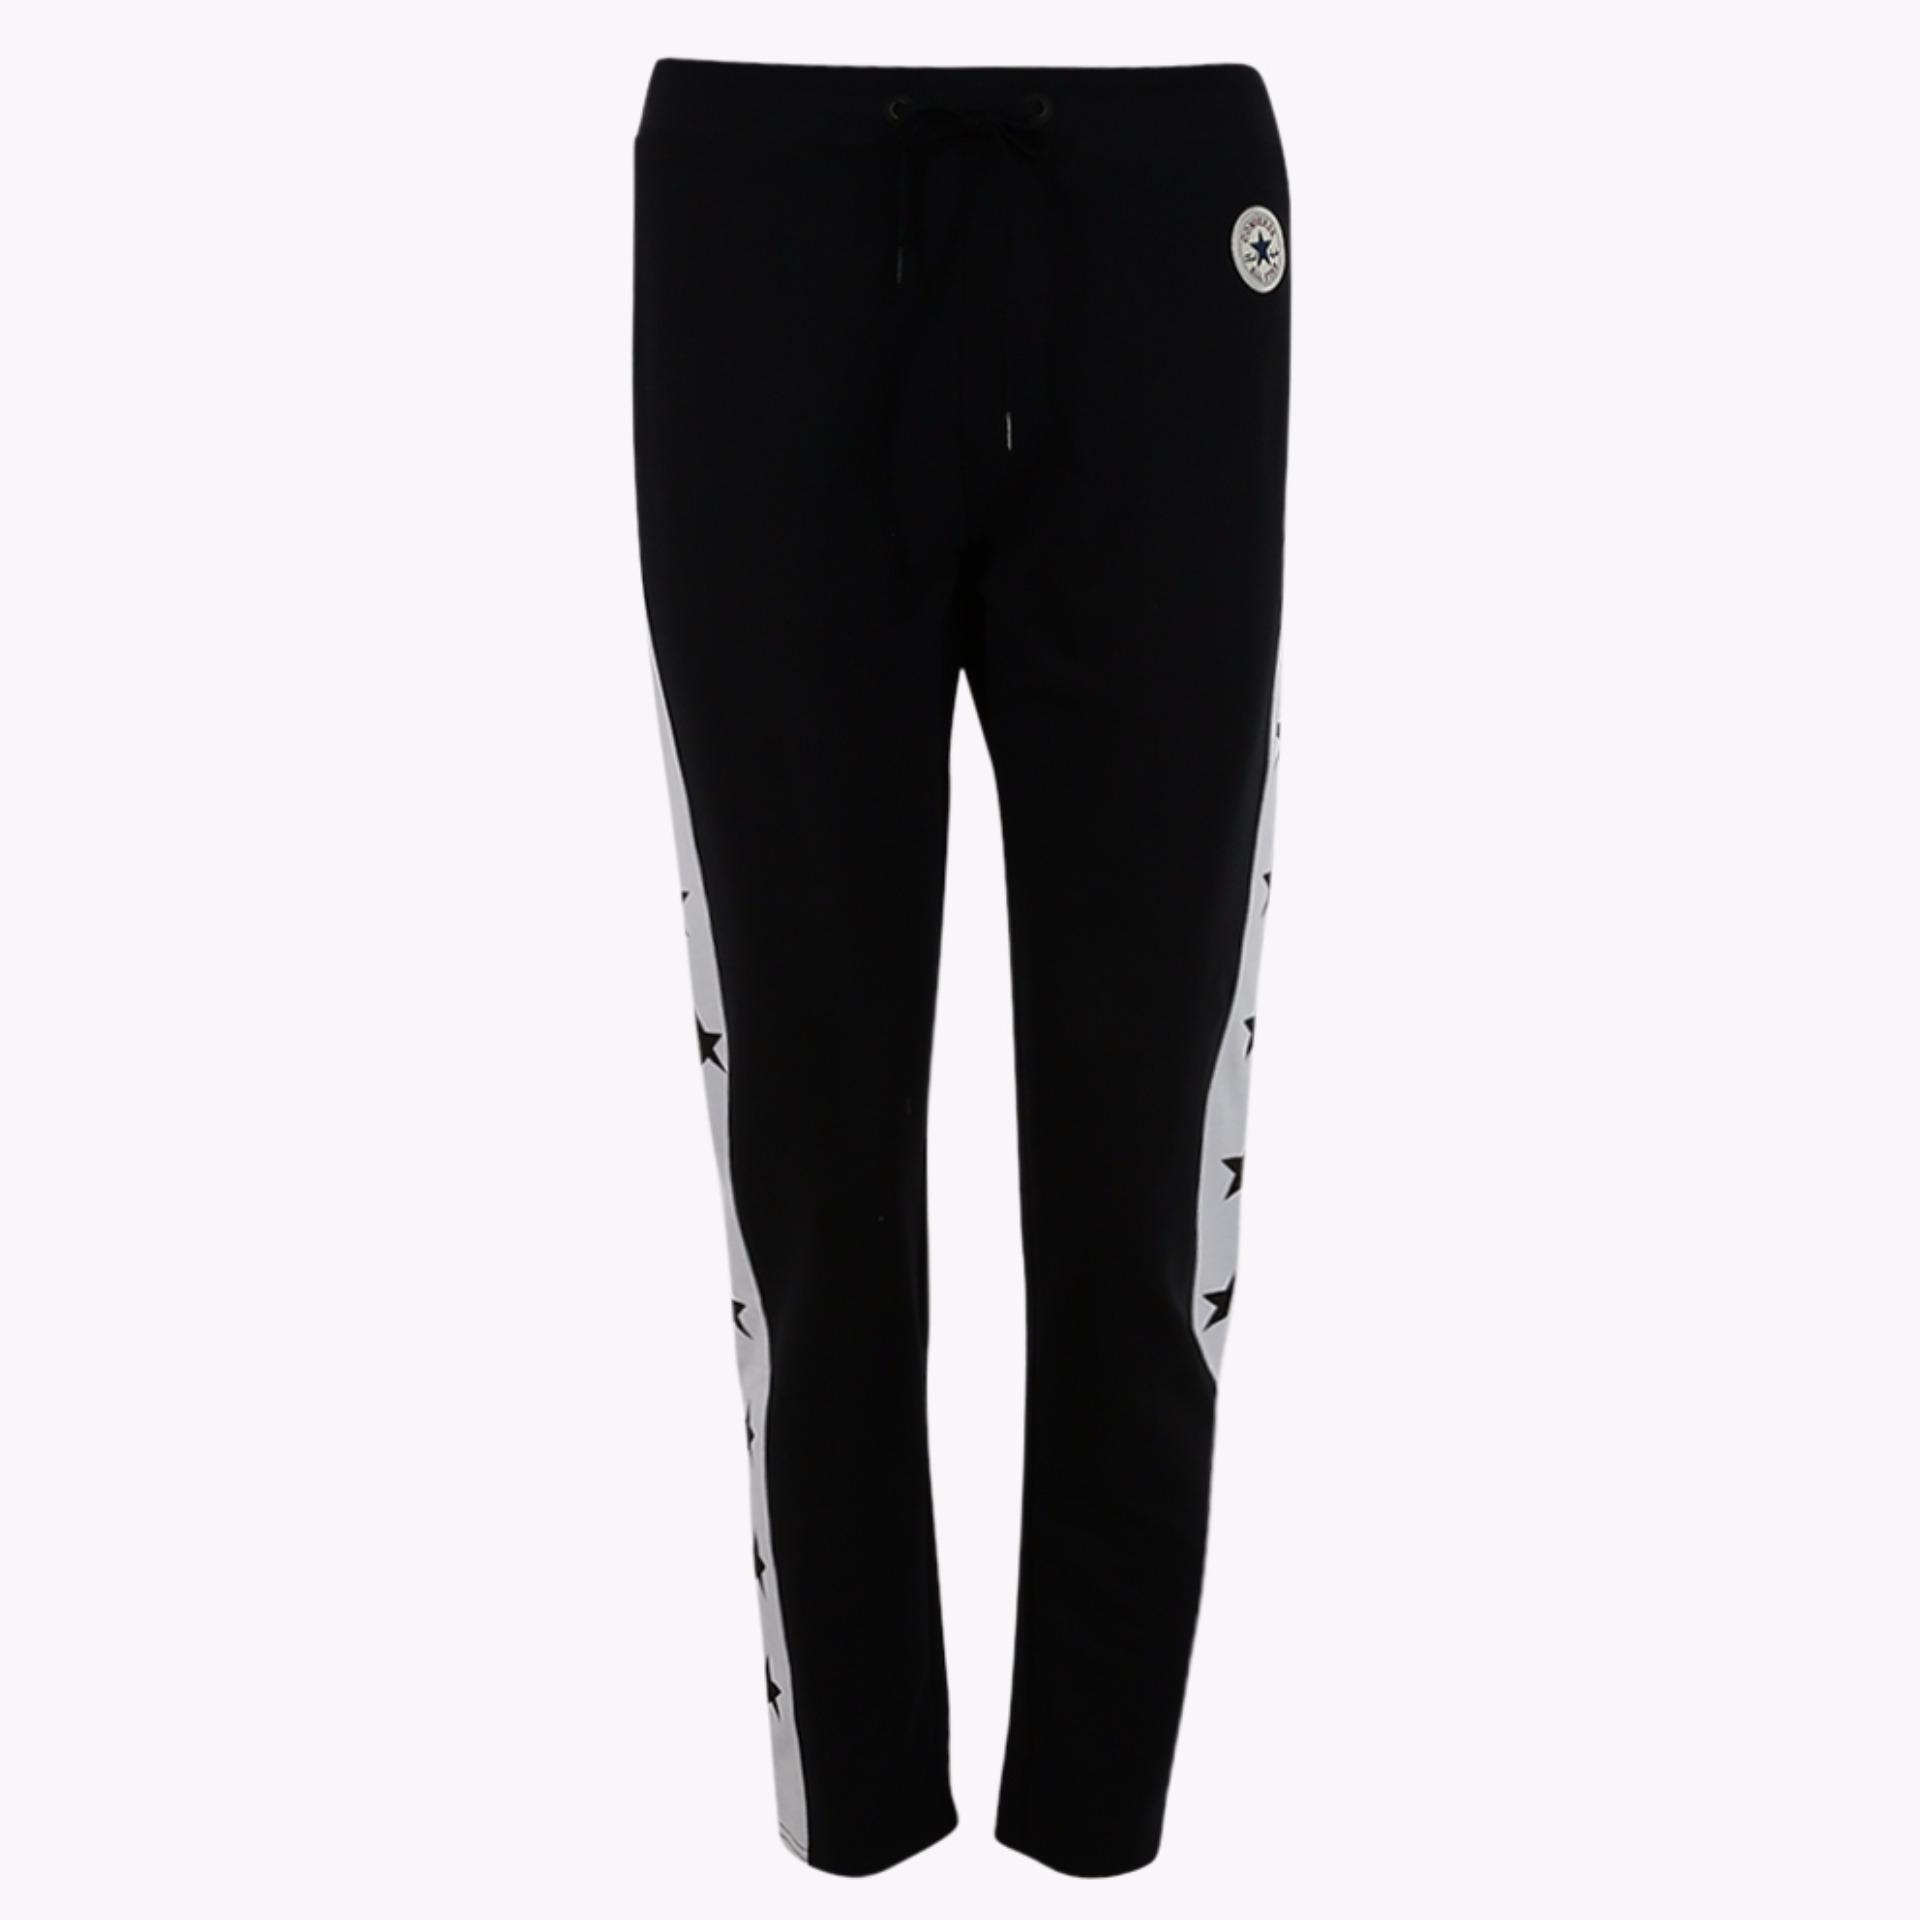 Harga Converse Star Print Cp Women S Pants Hitam Online Indonesia